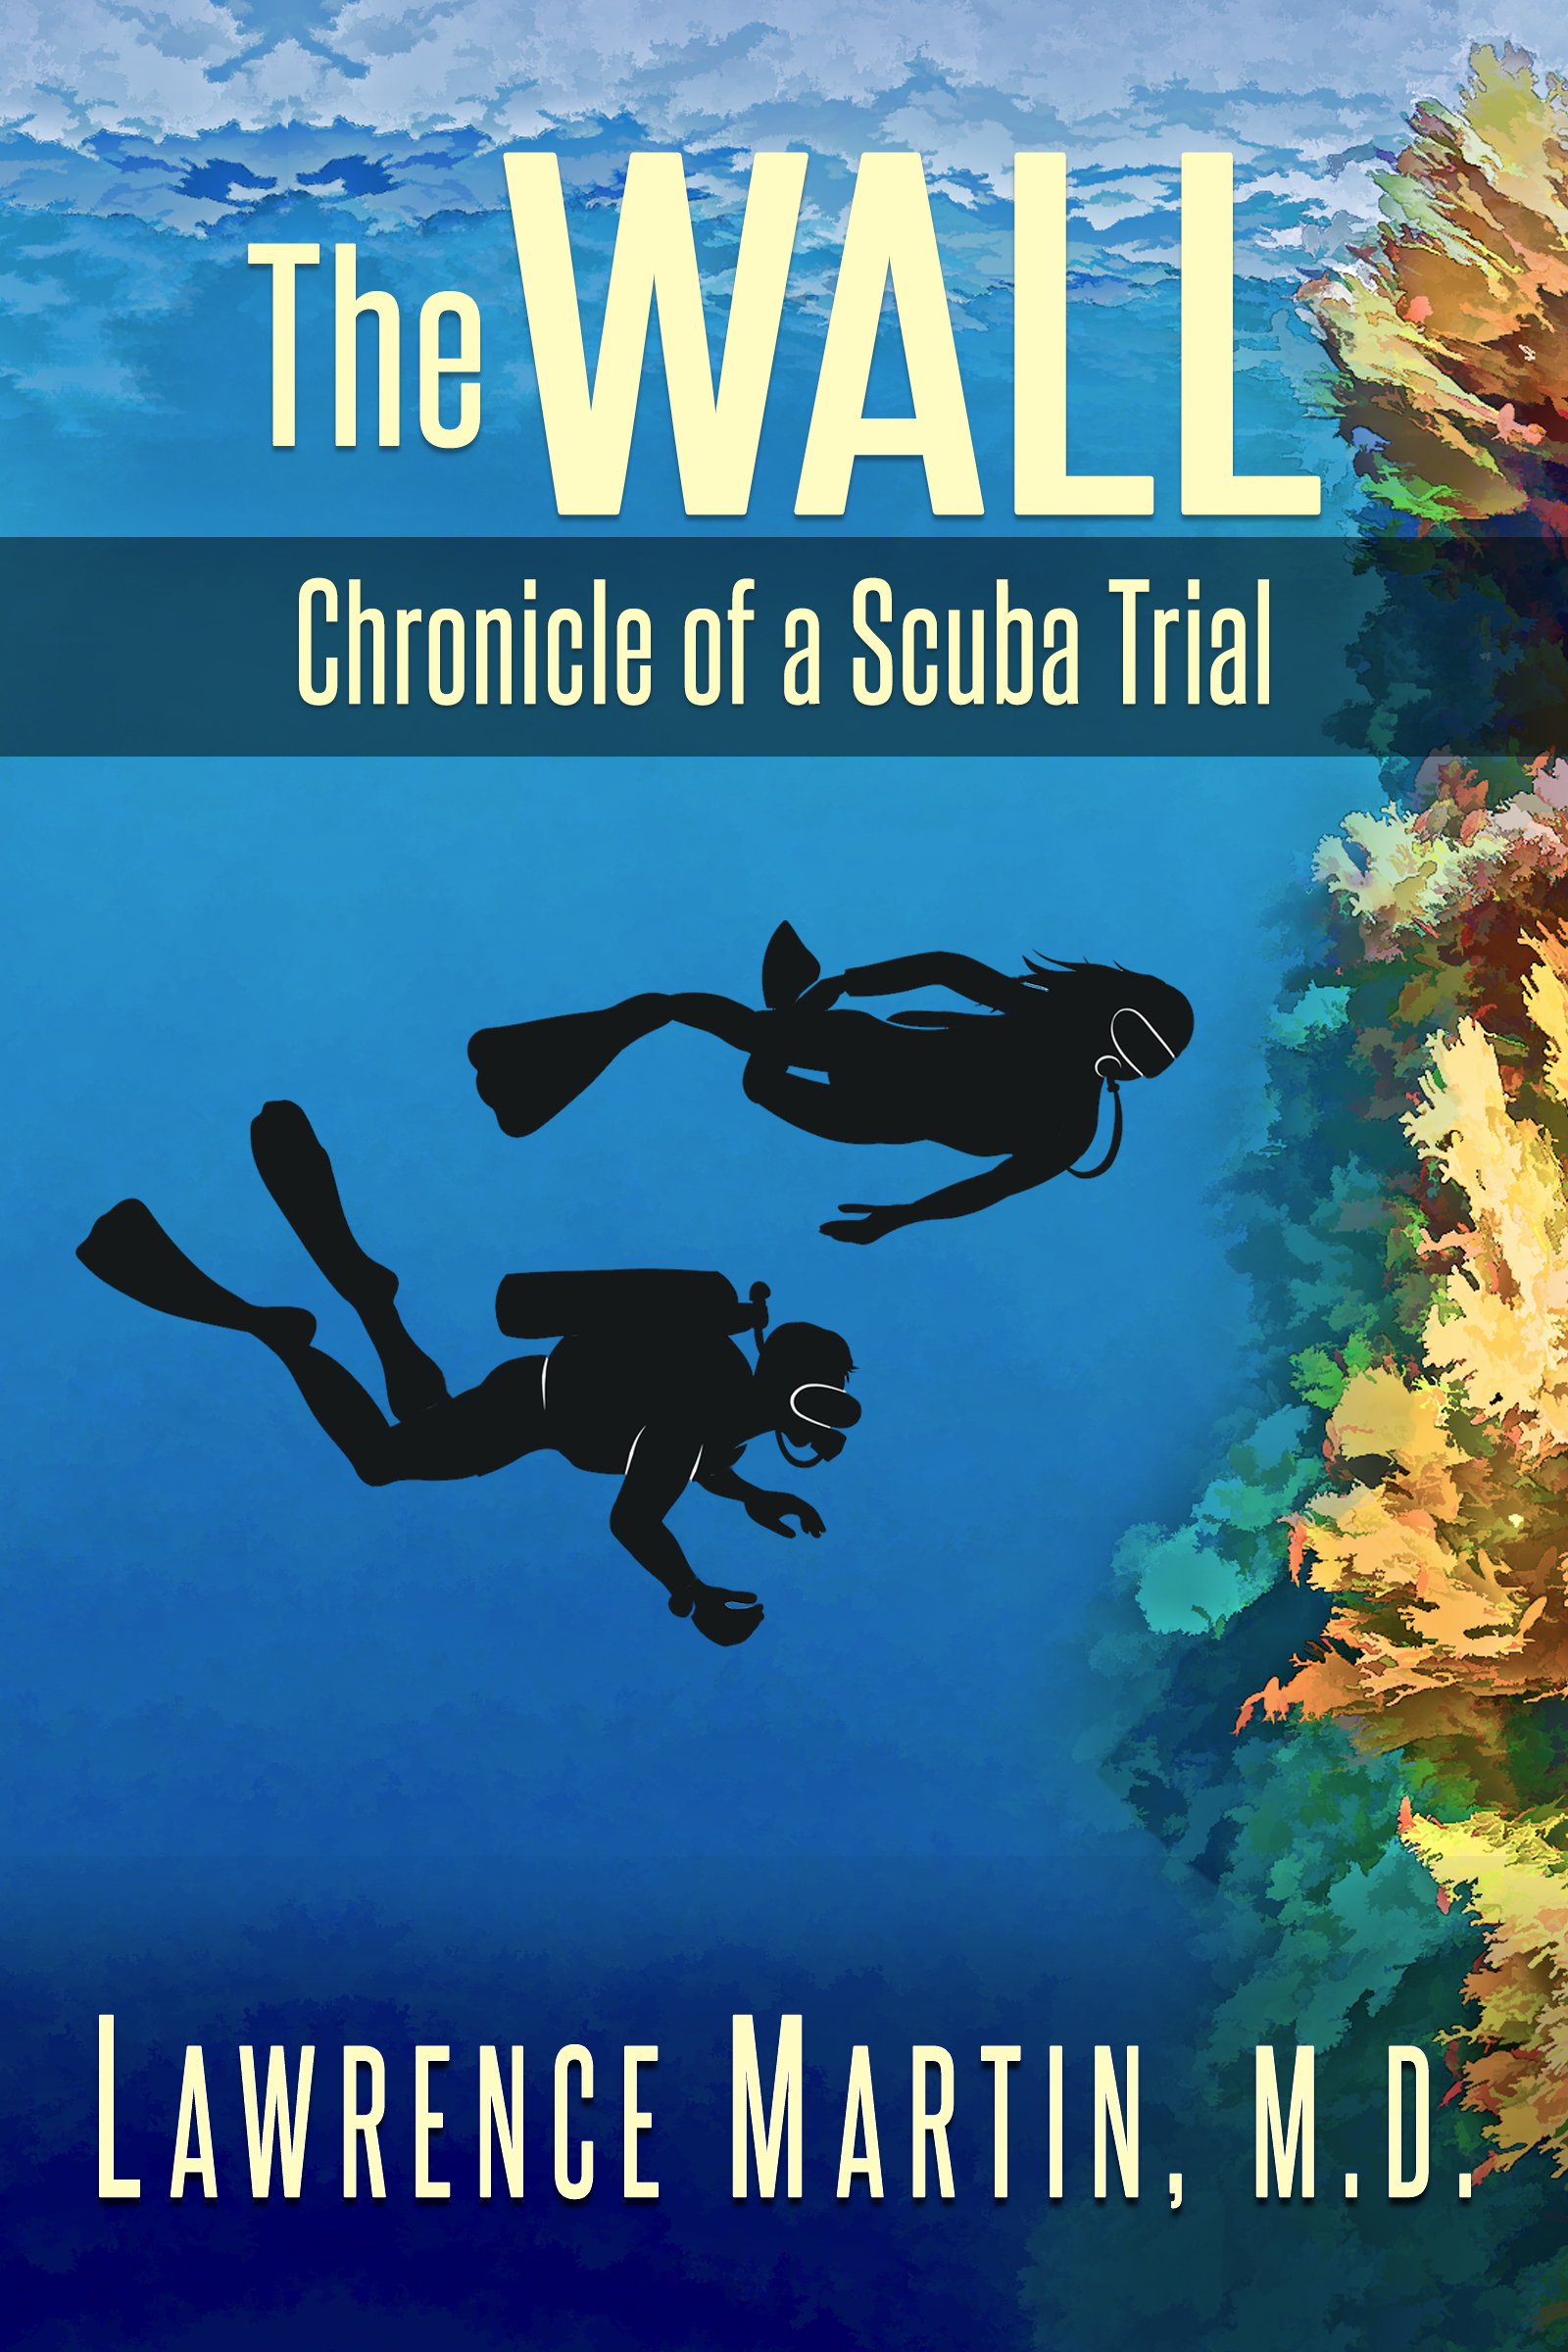 The Wall:  Chronical of a Scuba Trial